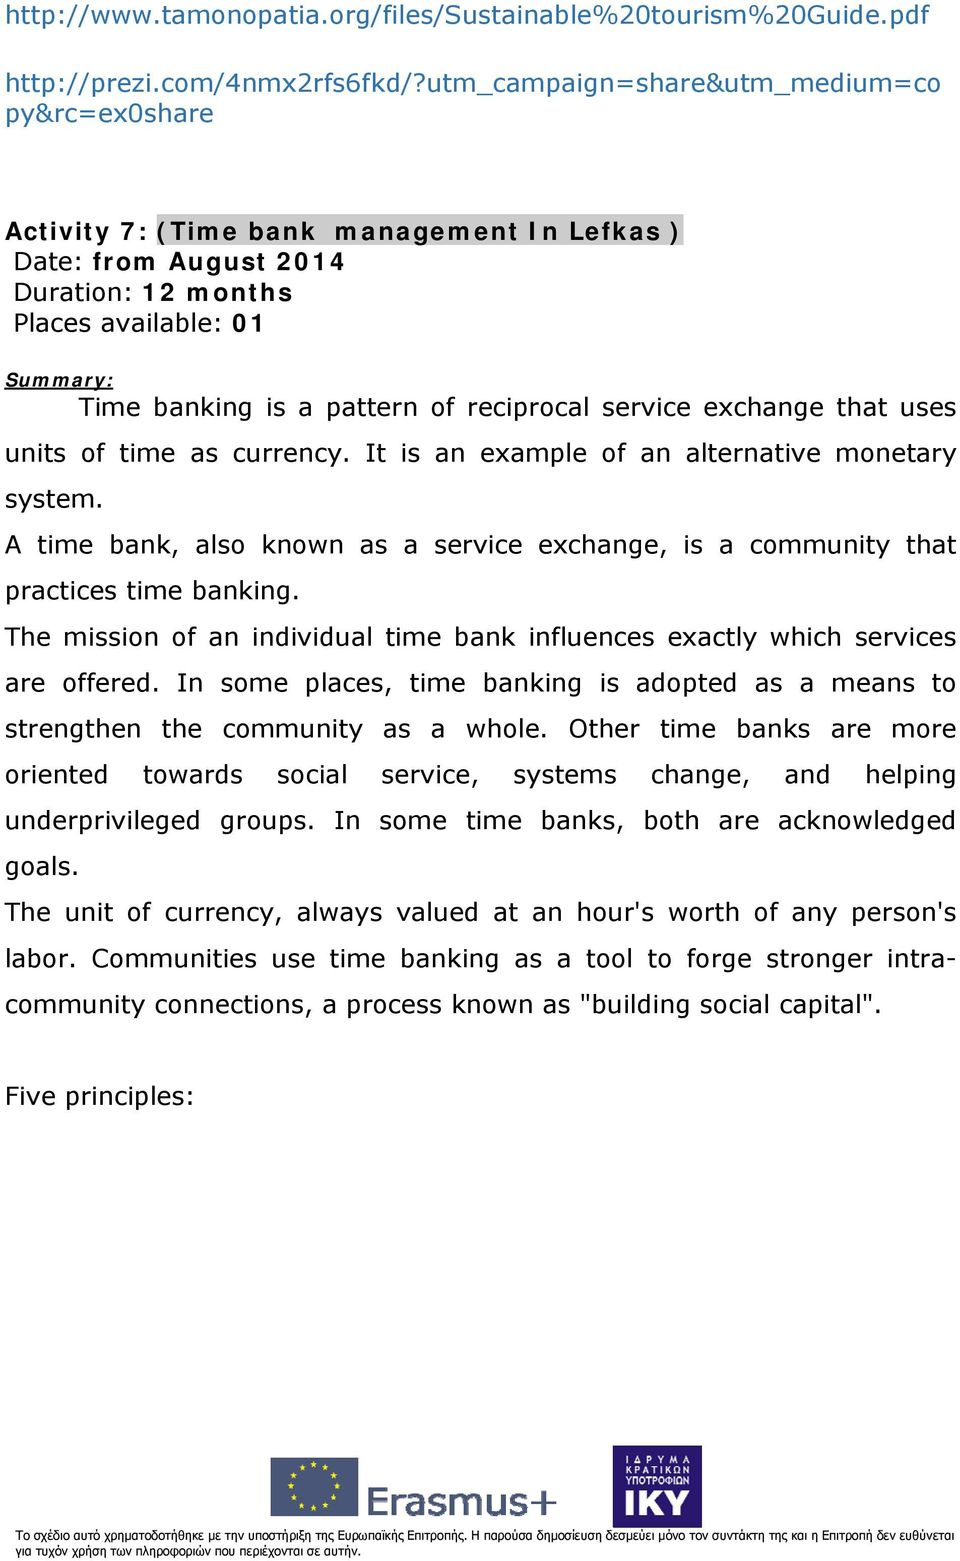 uses units of time as currency. It is an example of an alternative monetary system. A time bank, also known as a service exchange, is a community that practices time banking.